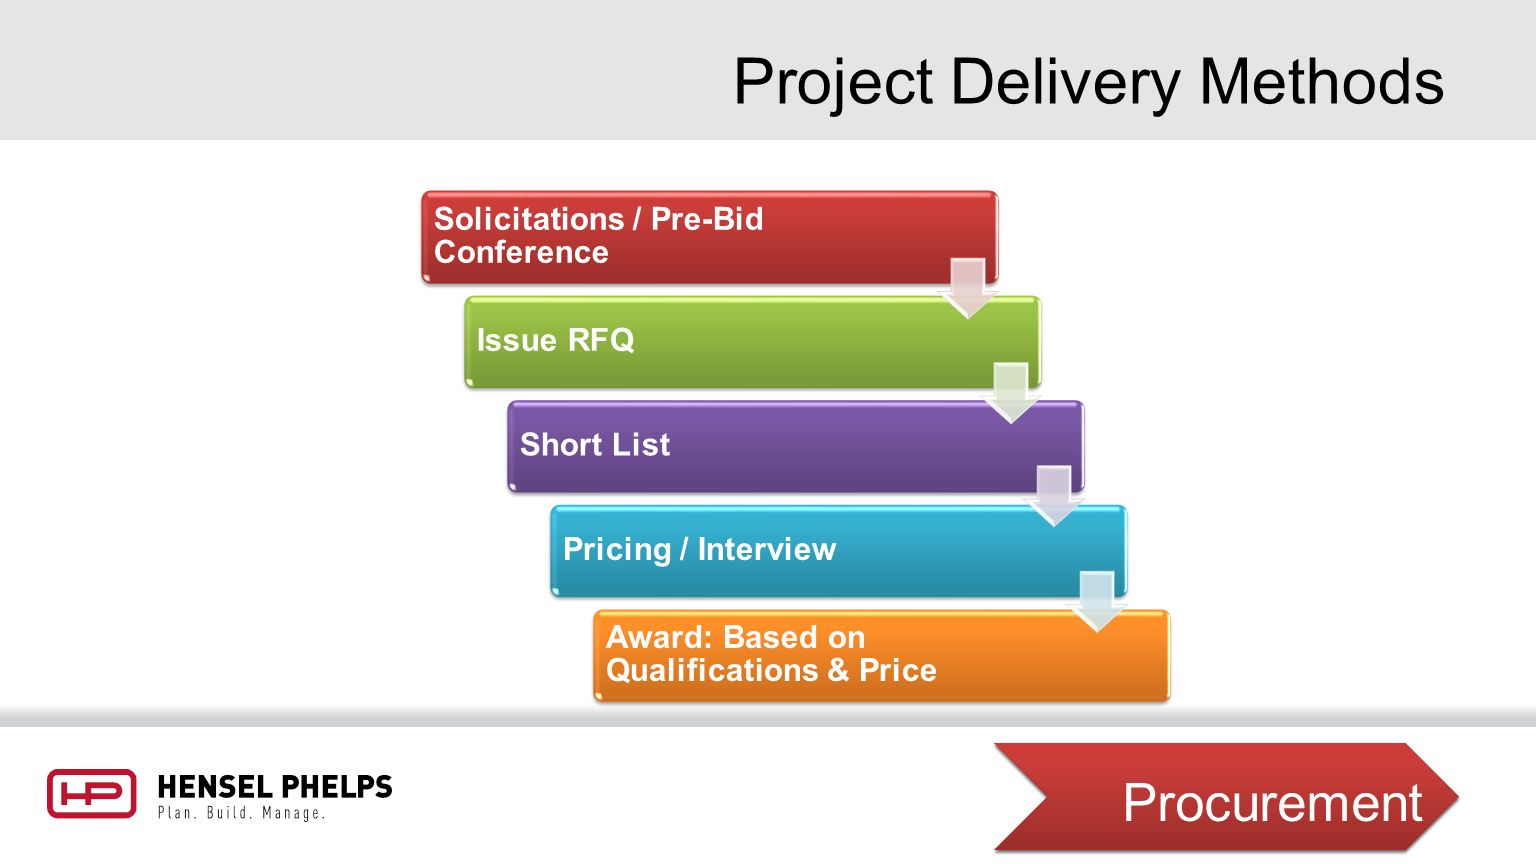 project delivery The lean project delivery system - project definition figure 3 is a schema of the lean project delivery system, a prescriptive model for managing projects, in which project definition is represented as a process of aligning ends, means and constraints.